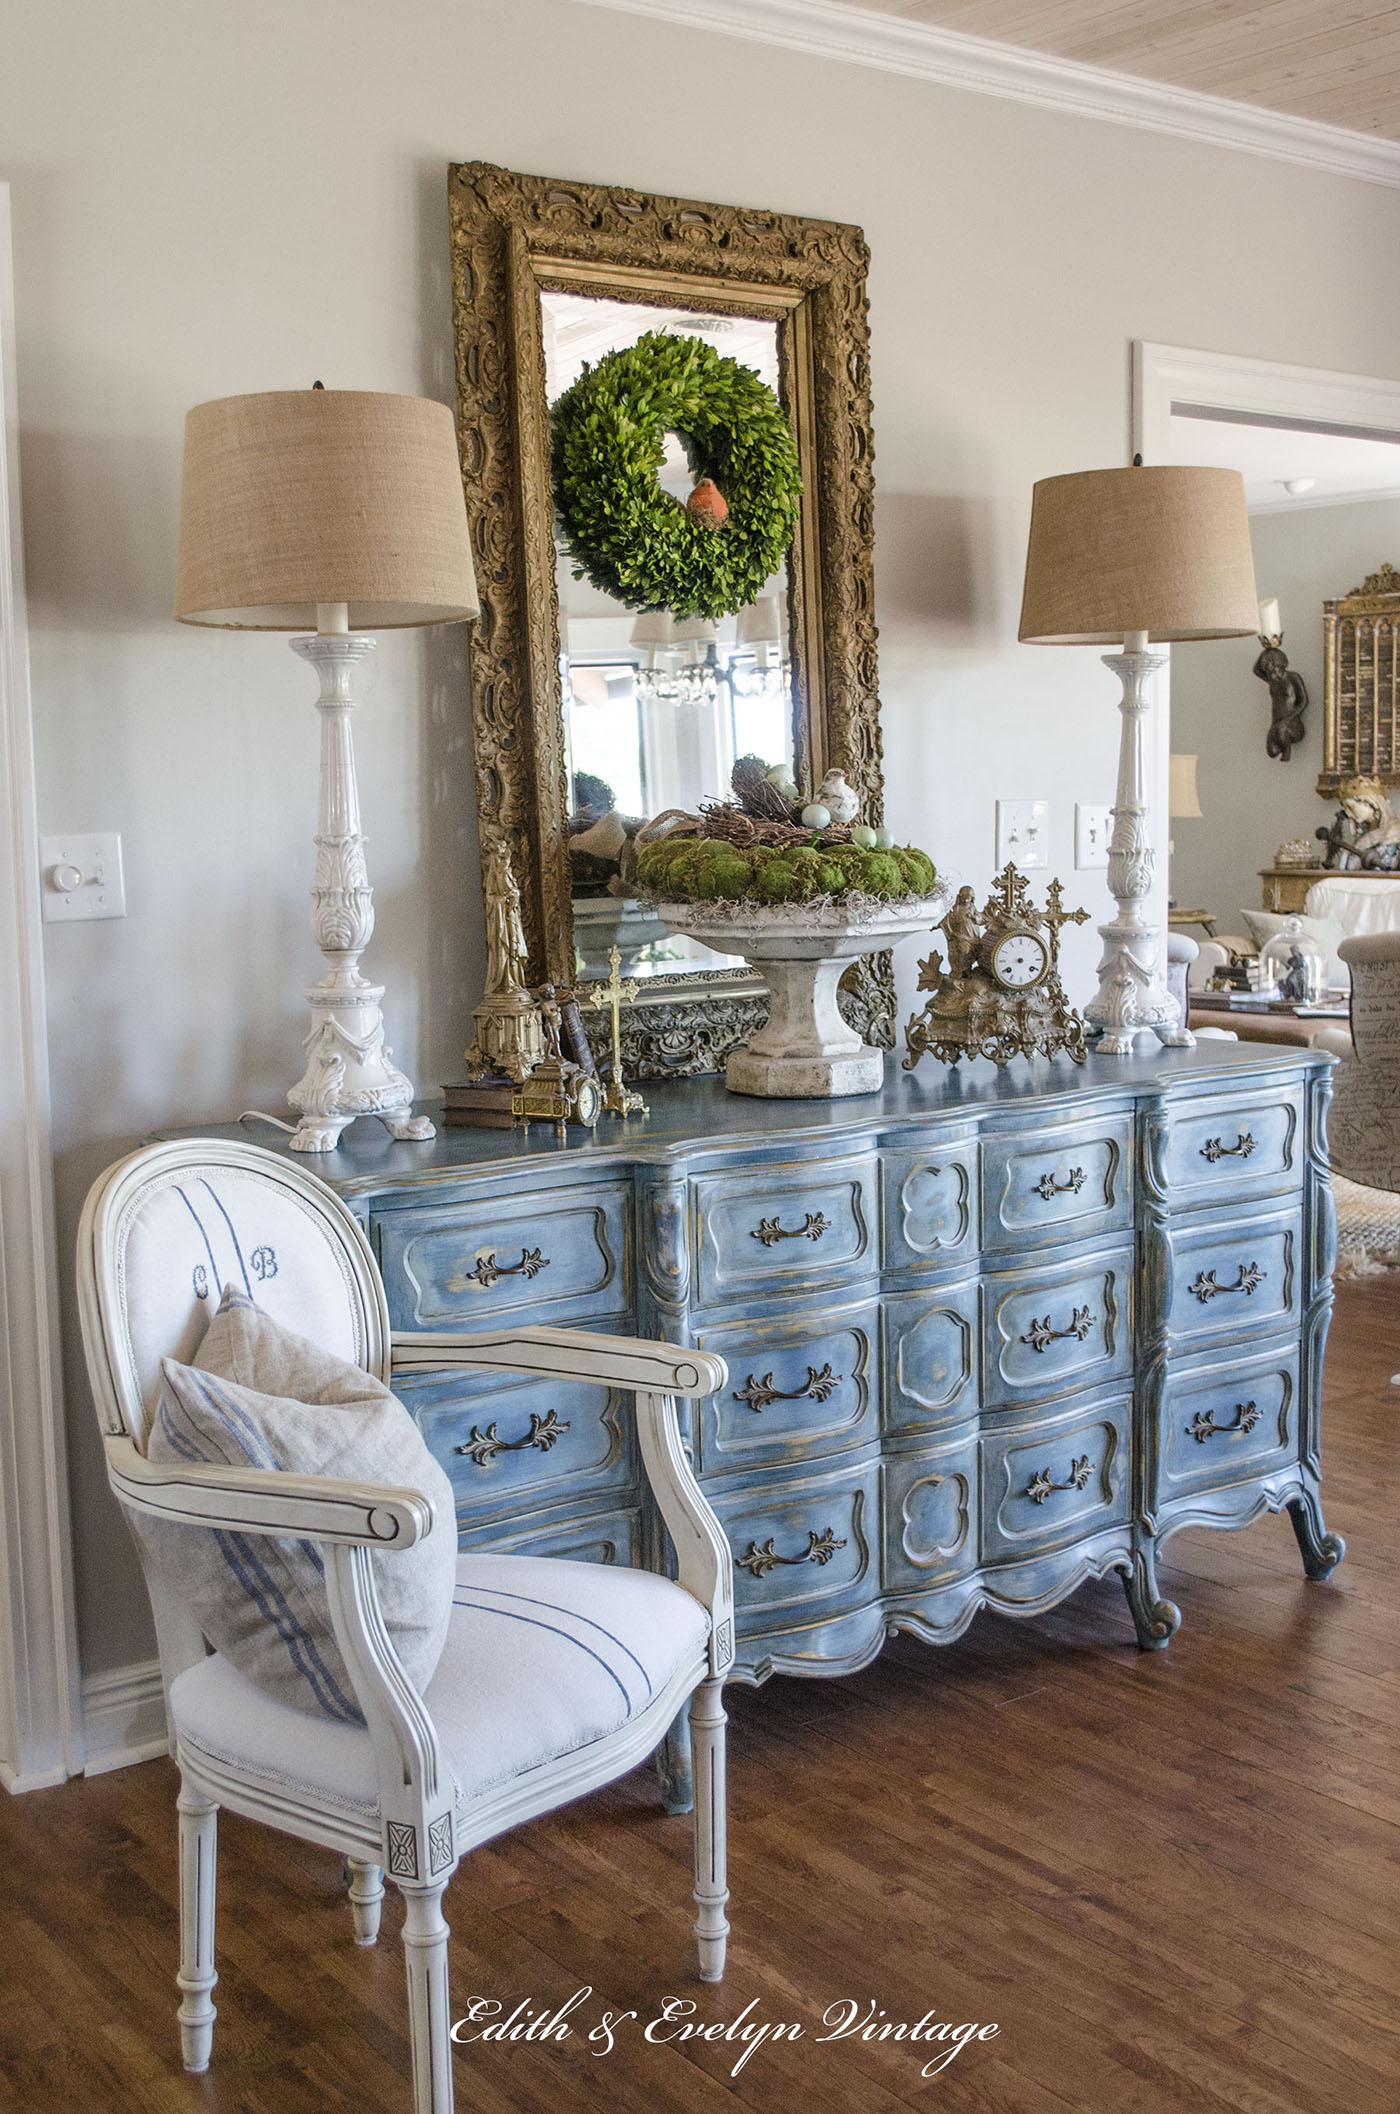 A Blue French Provincial Dresser